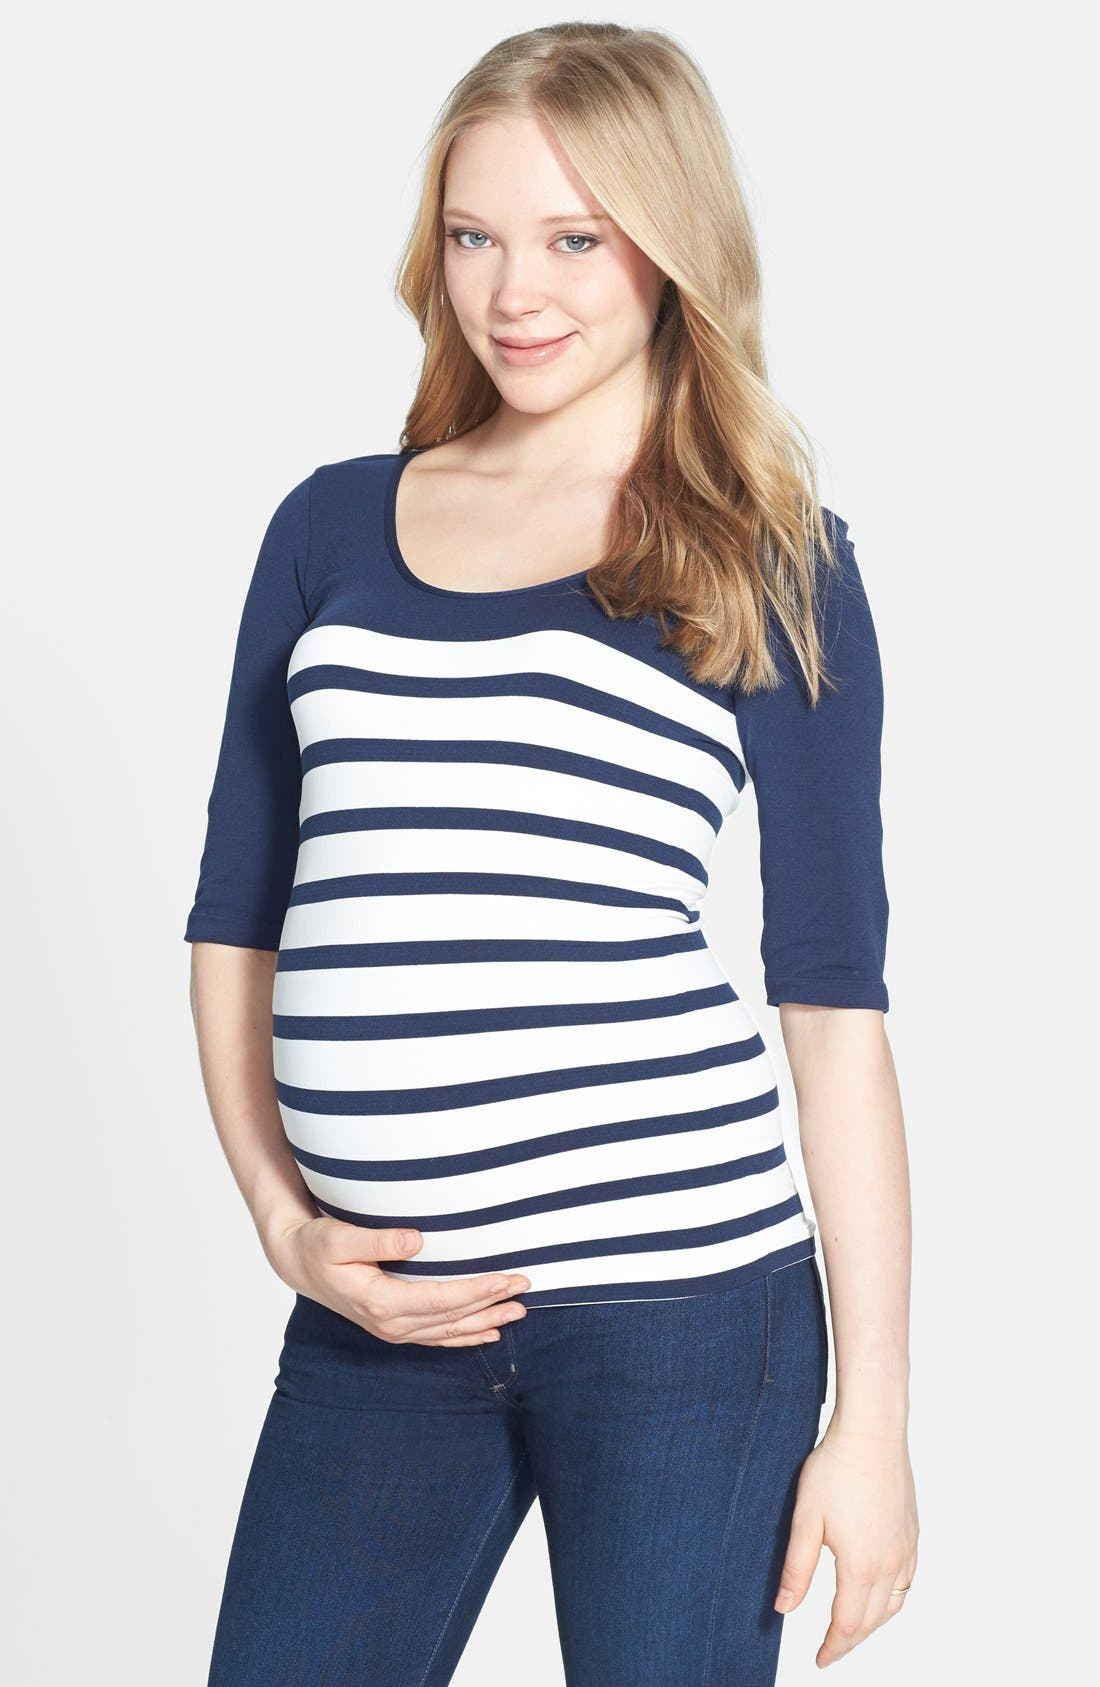 'St. Barts' Ballet Sleeve Maternity Top,                             Main thumbnail 1, color,                             NAVY/ WHITE